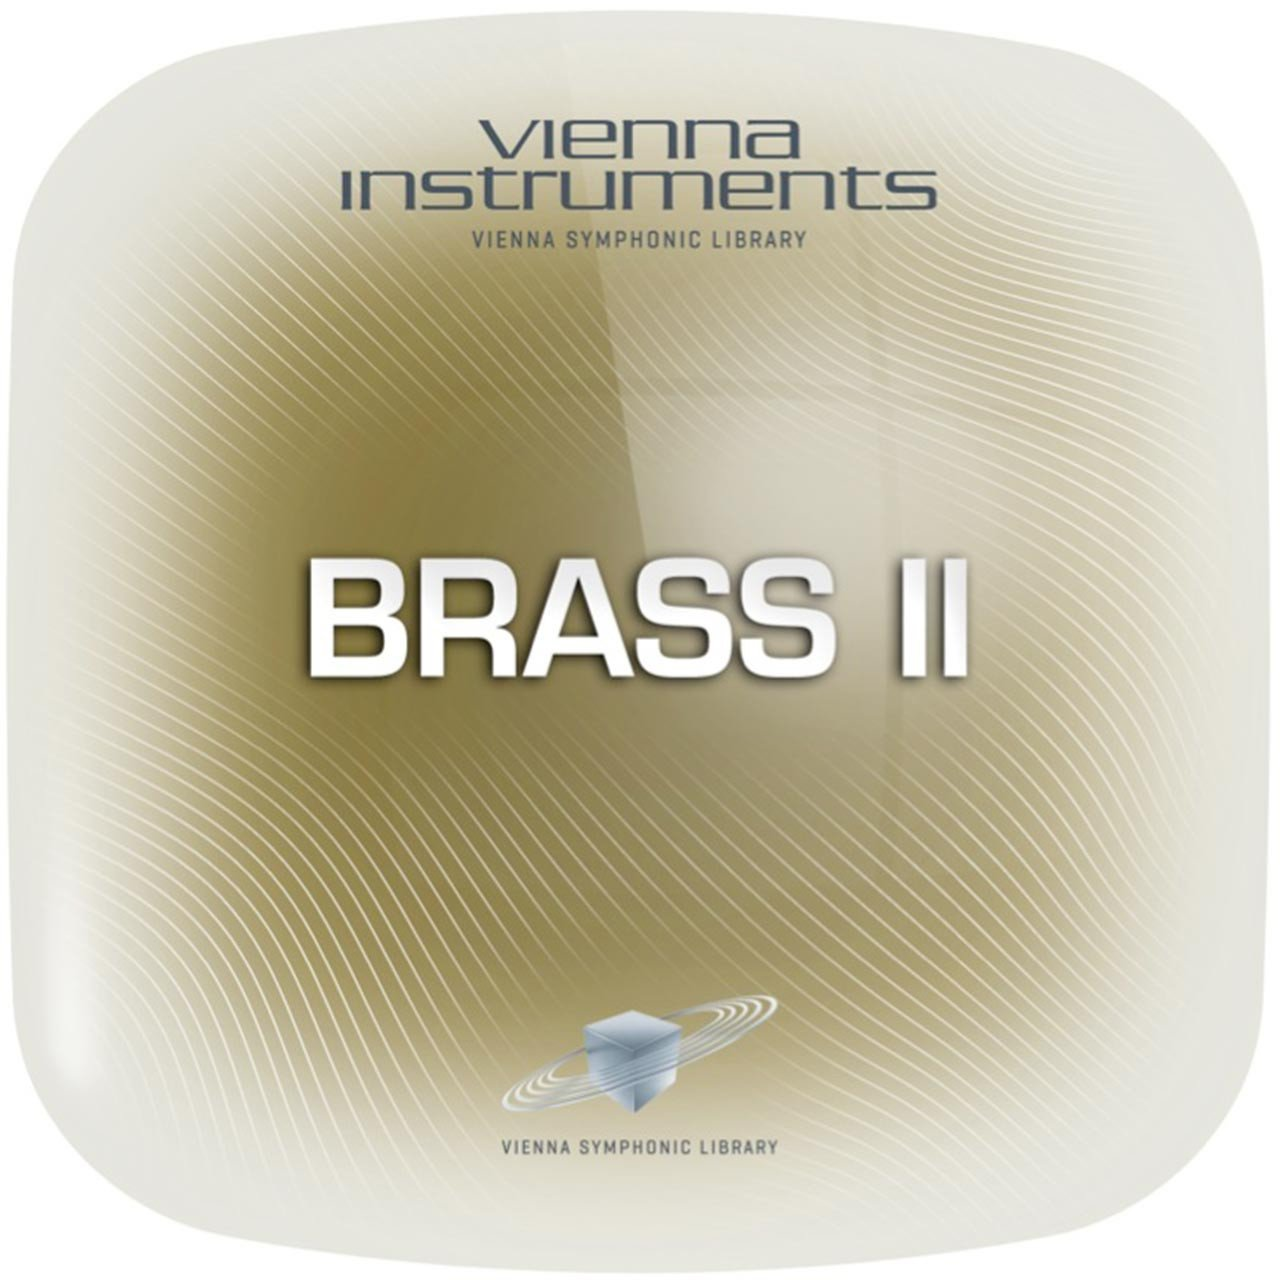 Software Instruments - Vienna Symphonic Library VSL - BRASS II